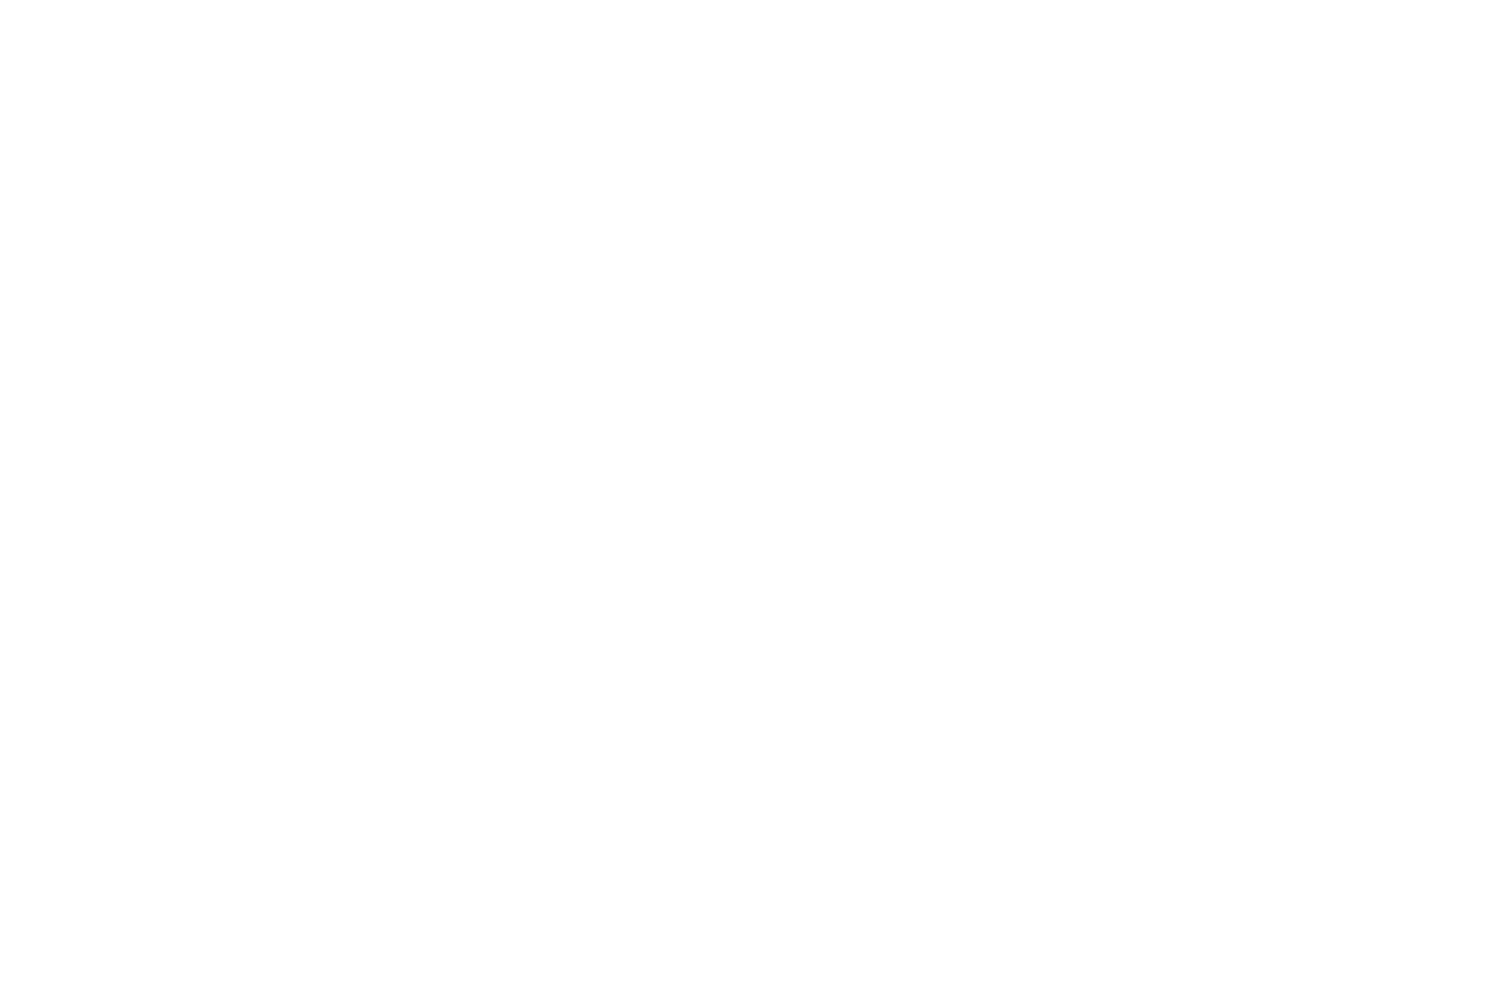 Emerald Coast Photography